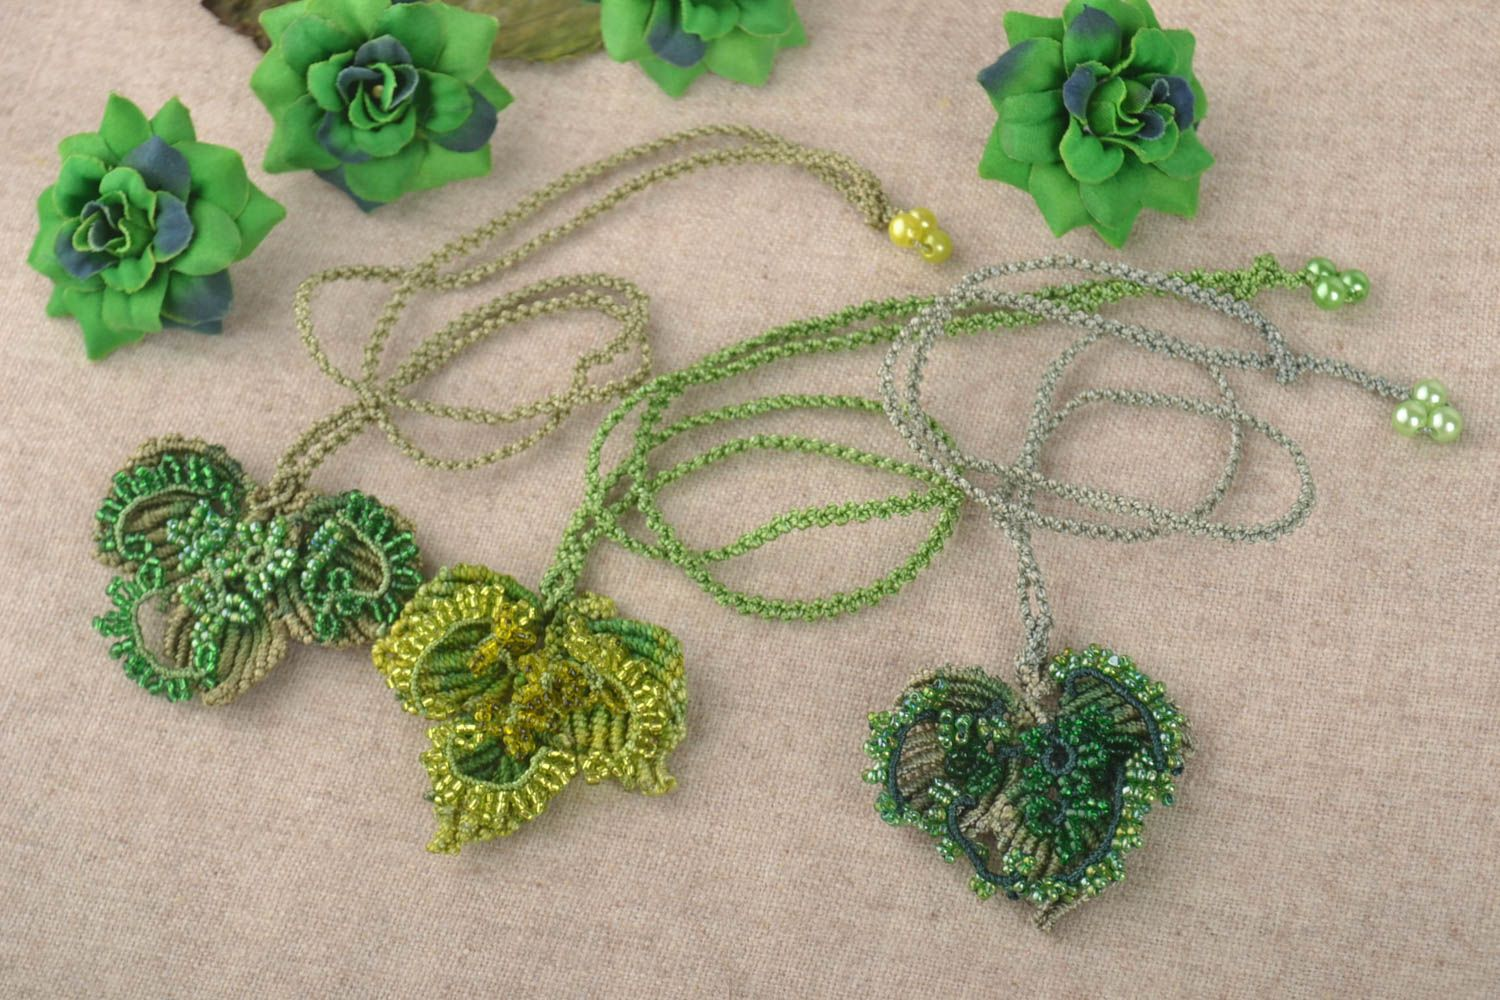 Handmade jewelry set 3 beaded necklaces macrame jewelry fashion accessories photo 1